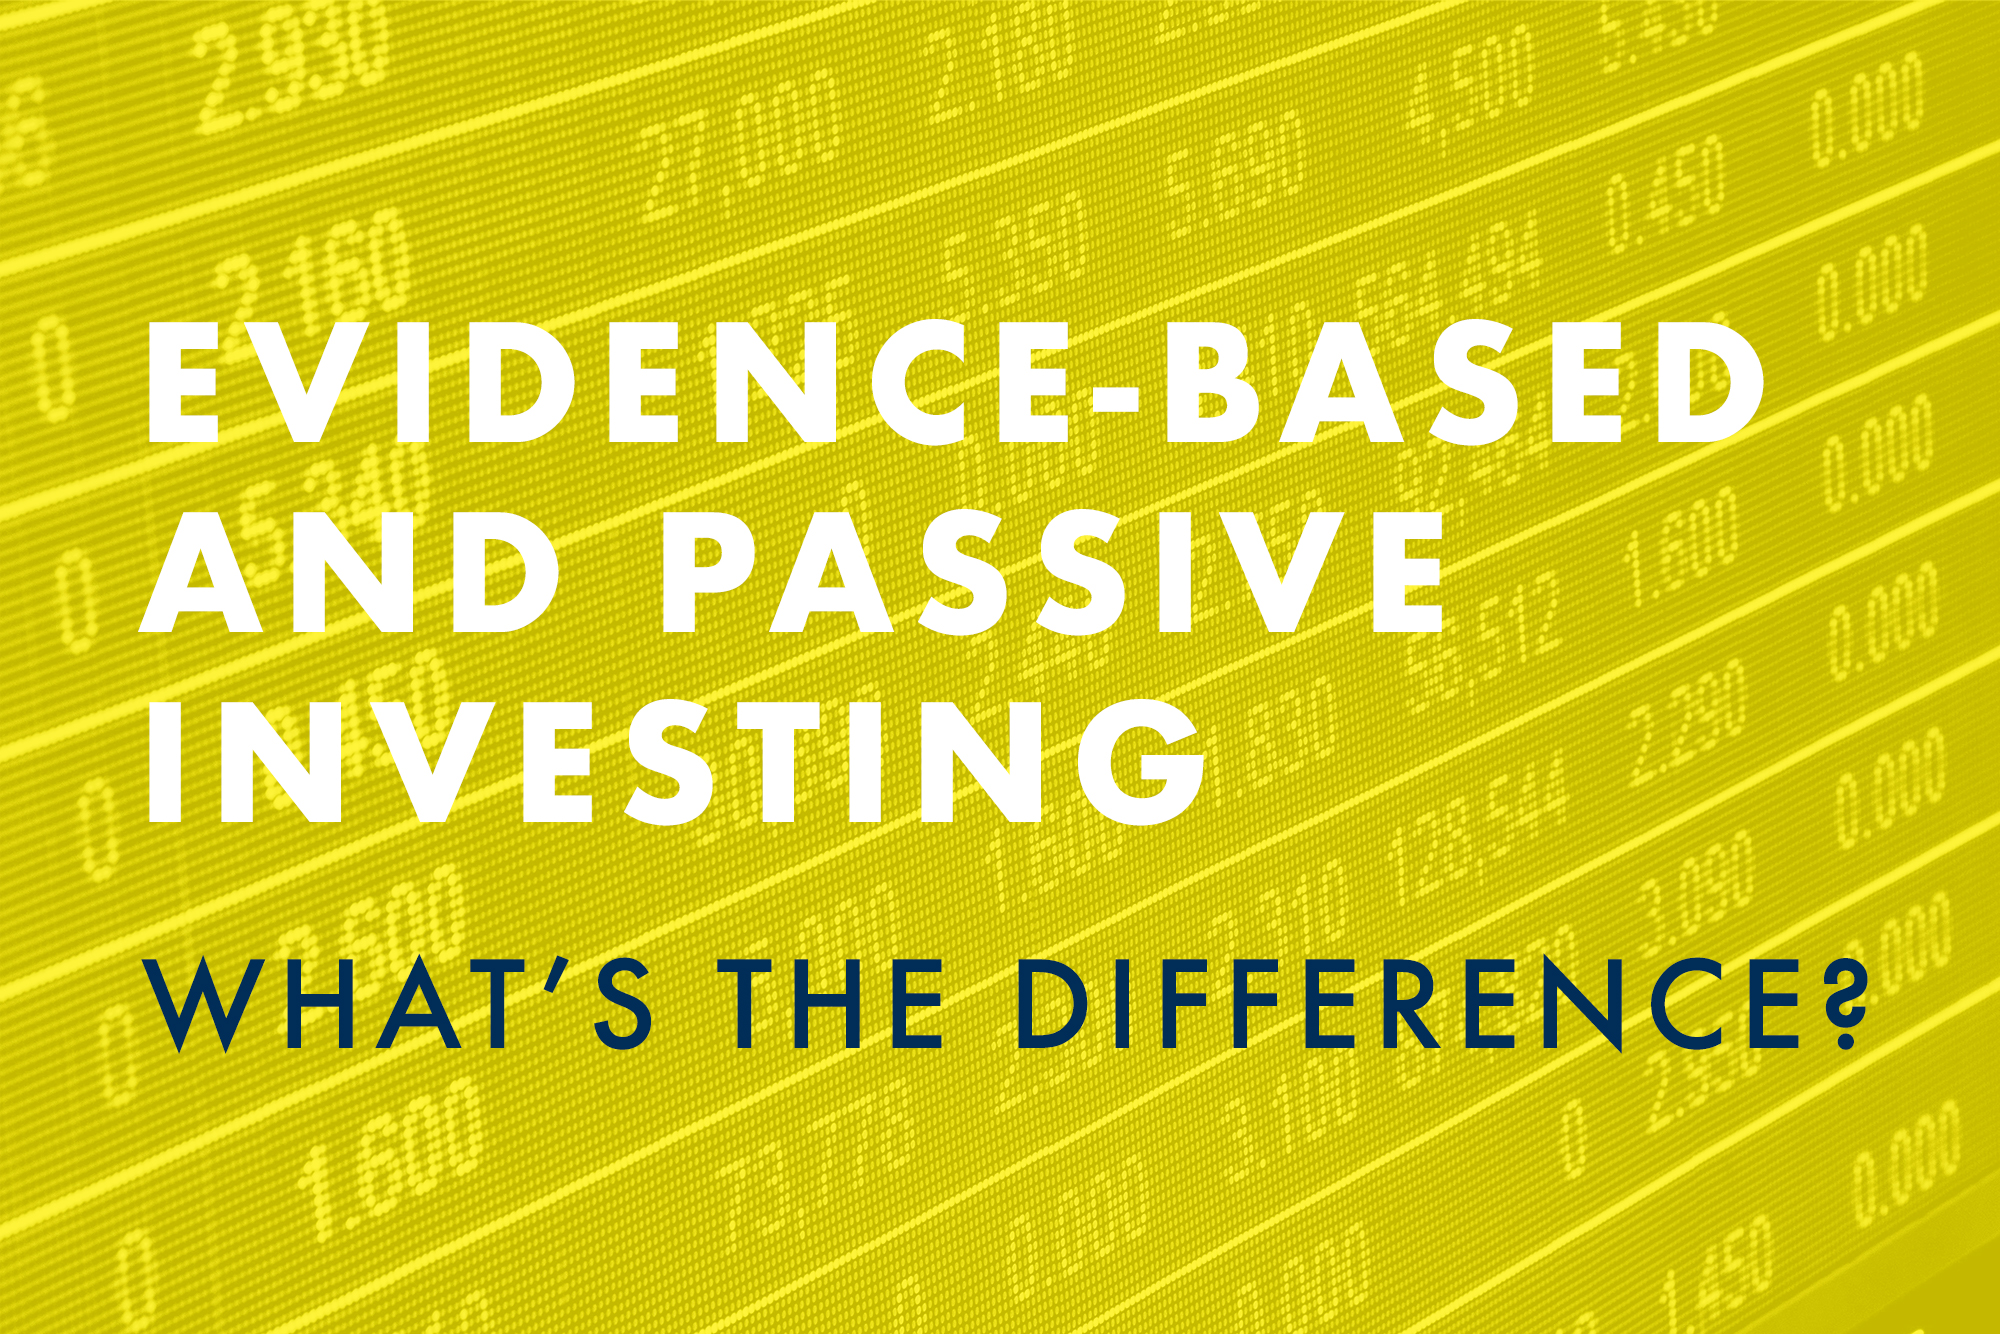 Evidence-Based and Passive Investing – What's the Difference?